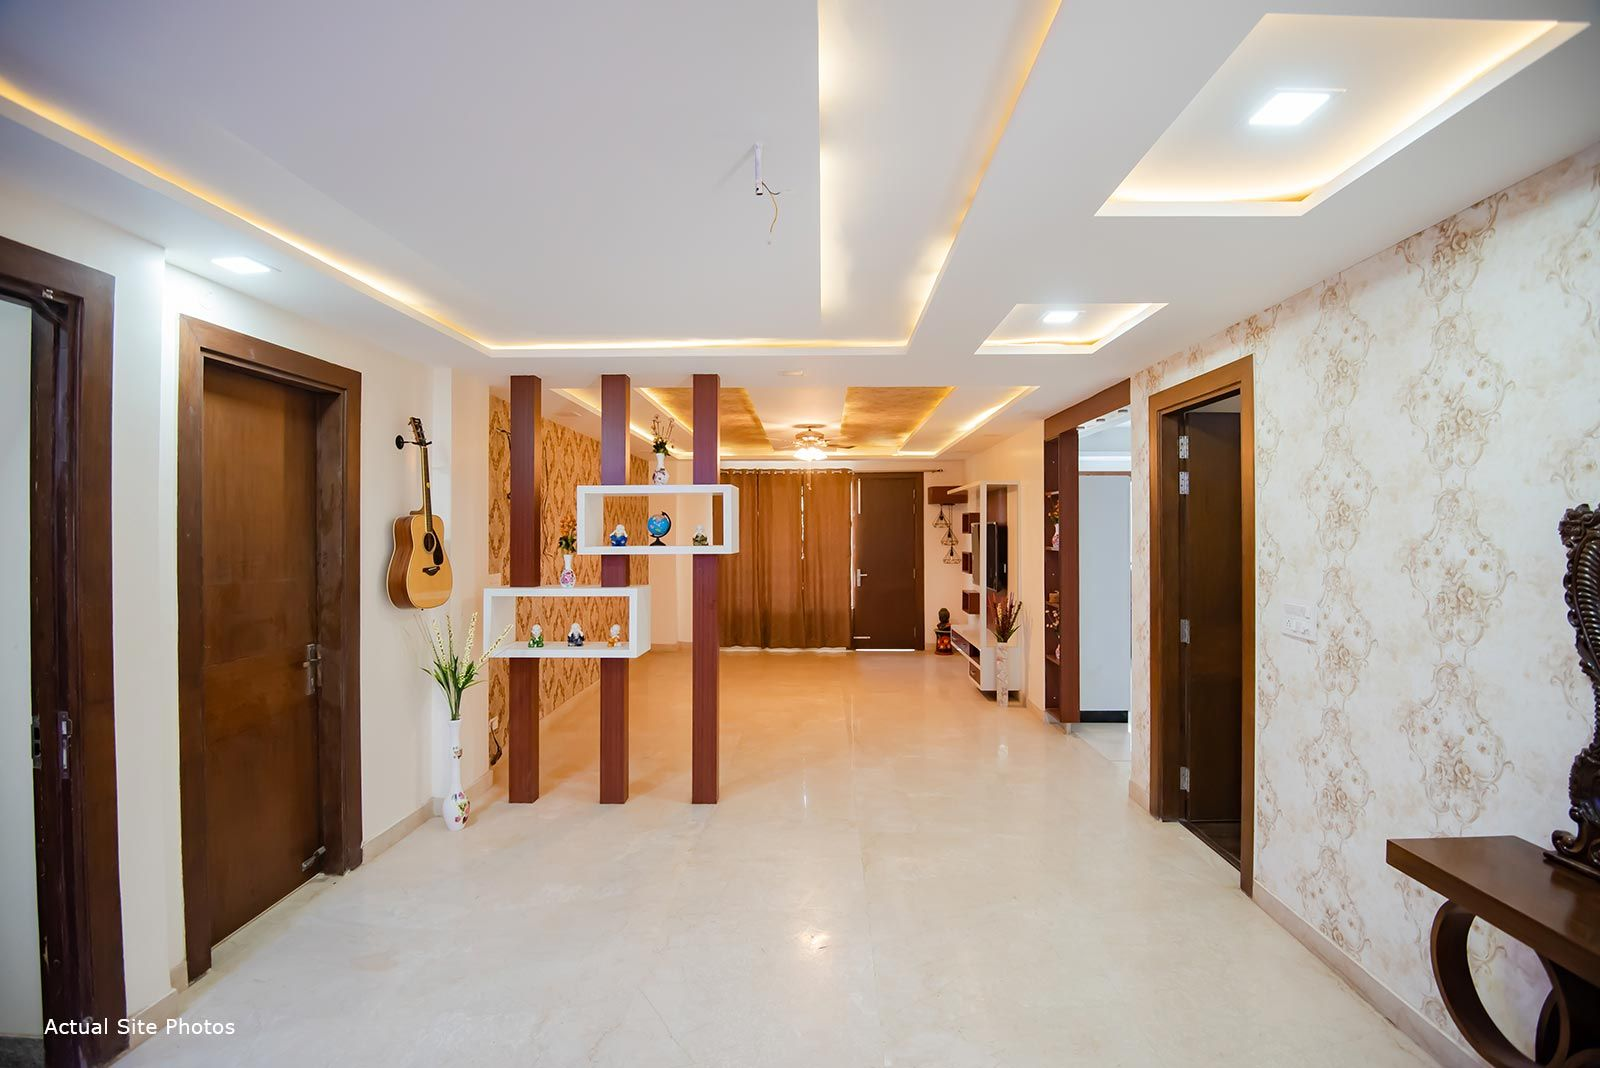 4 Bhk Builder Floor Sale Dlf Phase 2 Gurgaon For More Details 9811022205 Flooring Sale Ground Floor Flooring